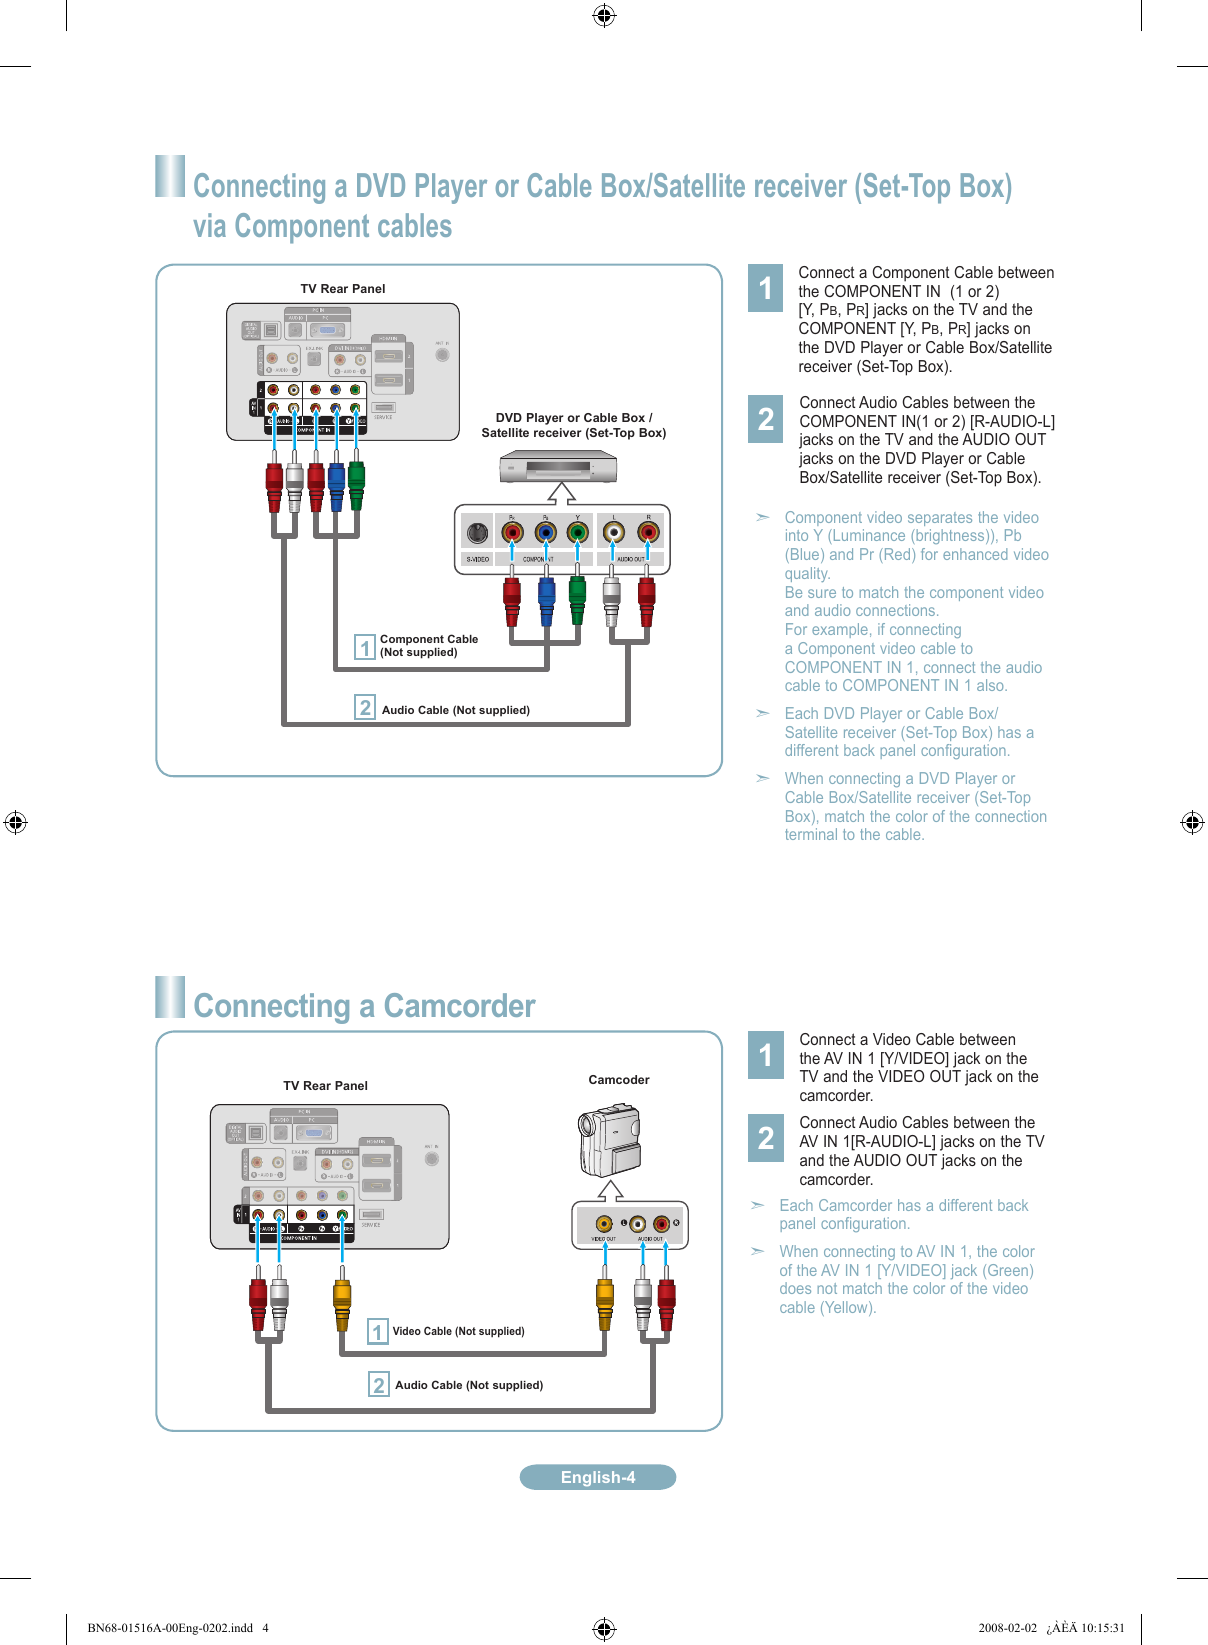 Funky Connect Dvd To Cable Box Image - Electrical Diagram Ideas ...